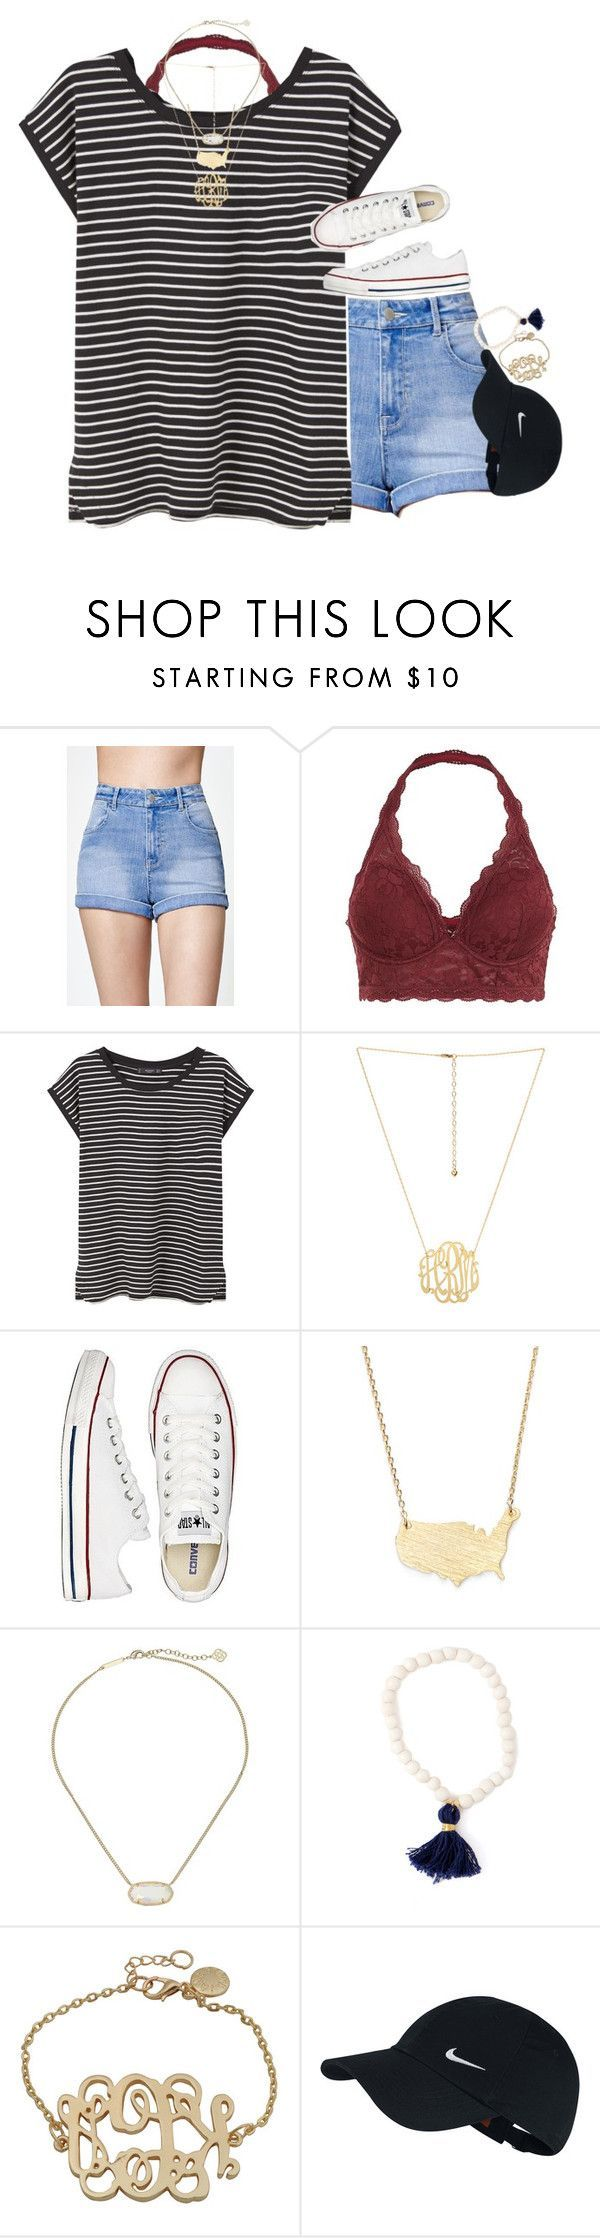 """why is target putting out school supplies? "" by meljordrum ❤ liked on Polyvore featuring Kendall + Kylie, MANGO, Converse, Moon and Lola, Kendra Scott, NIKE and meljordrumfavsets"